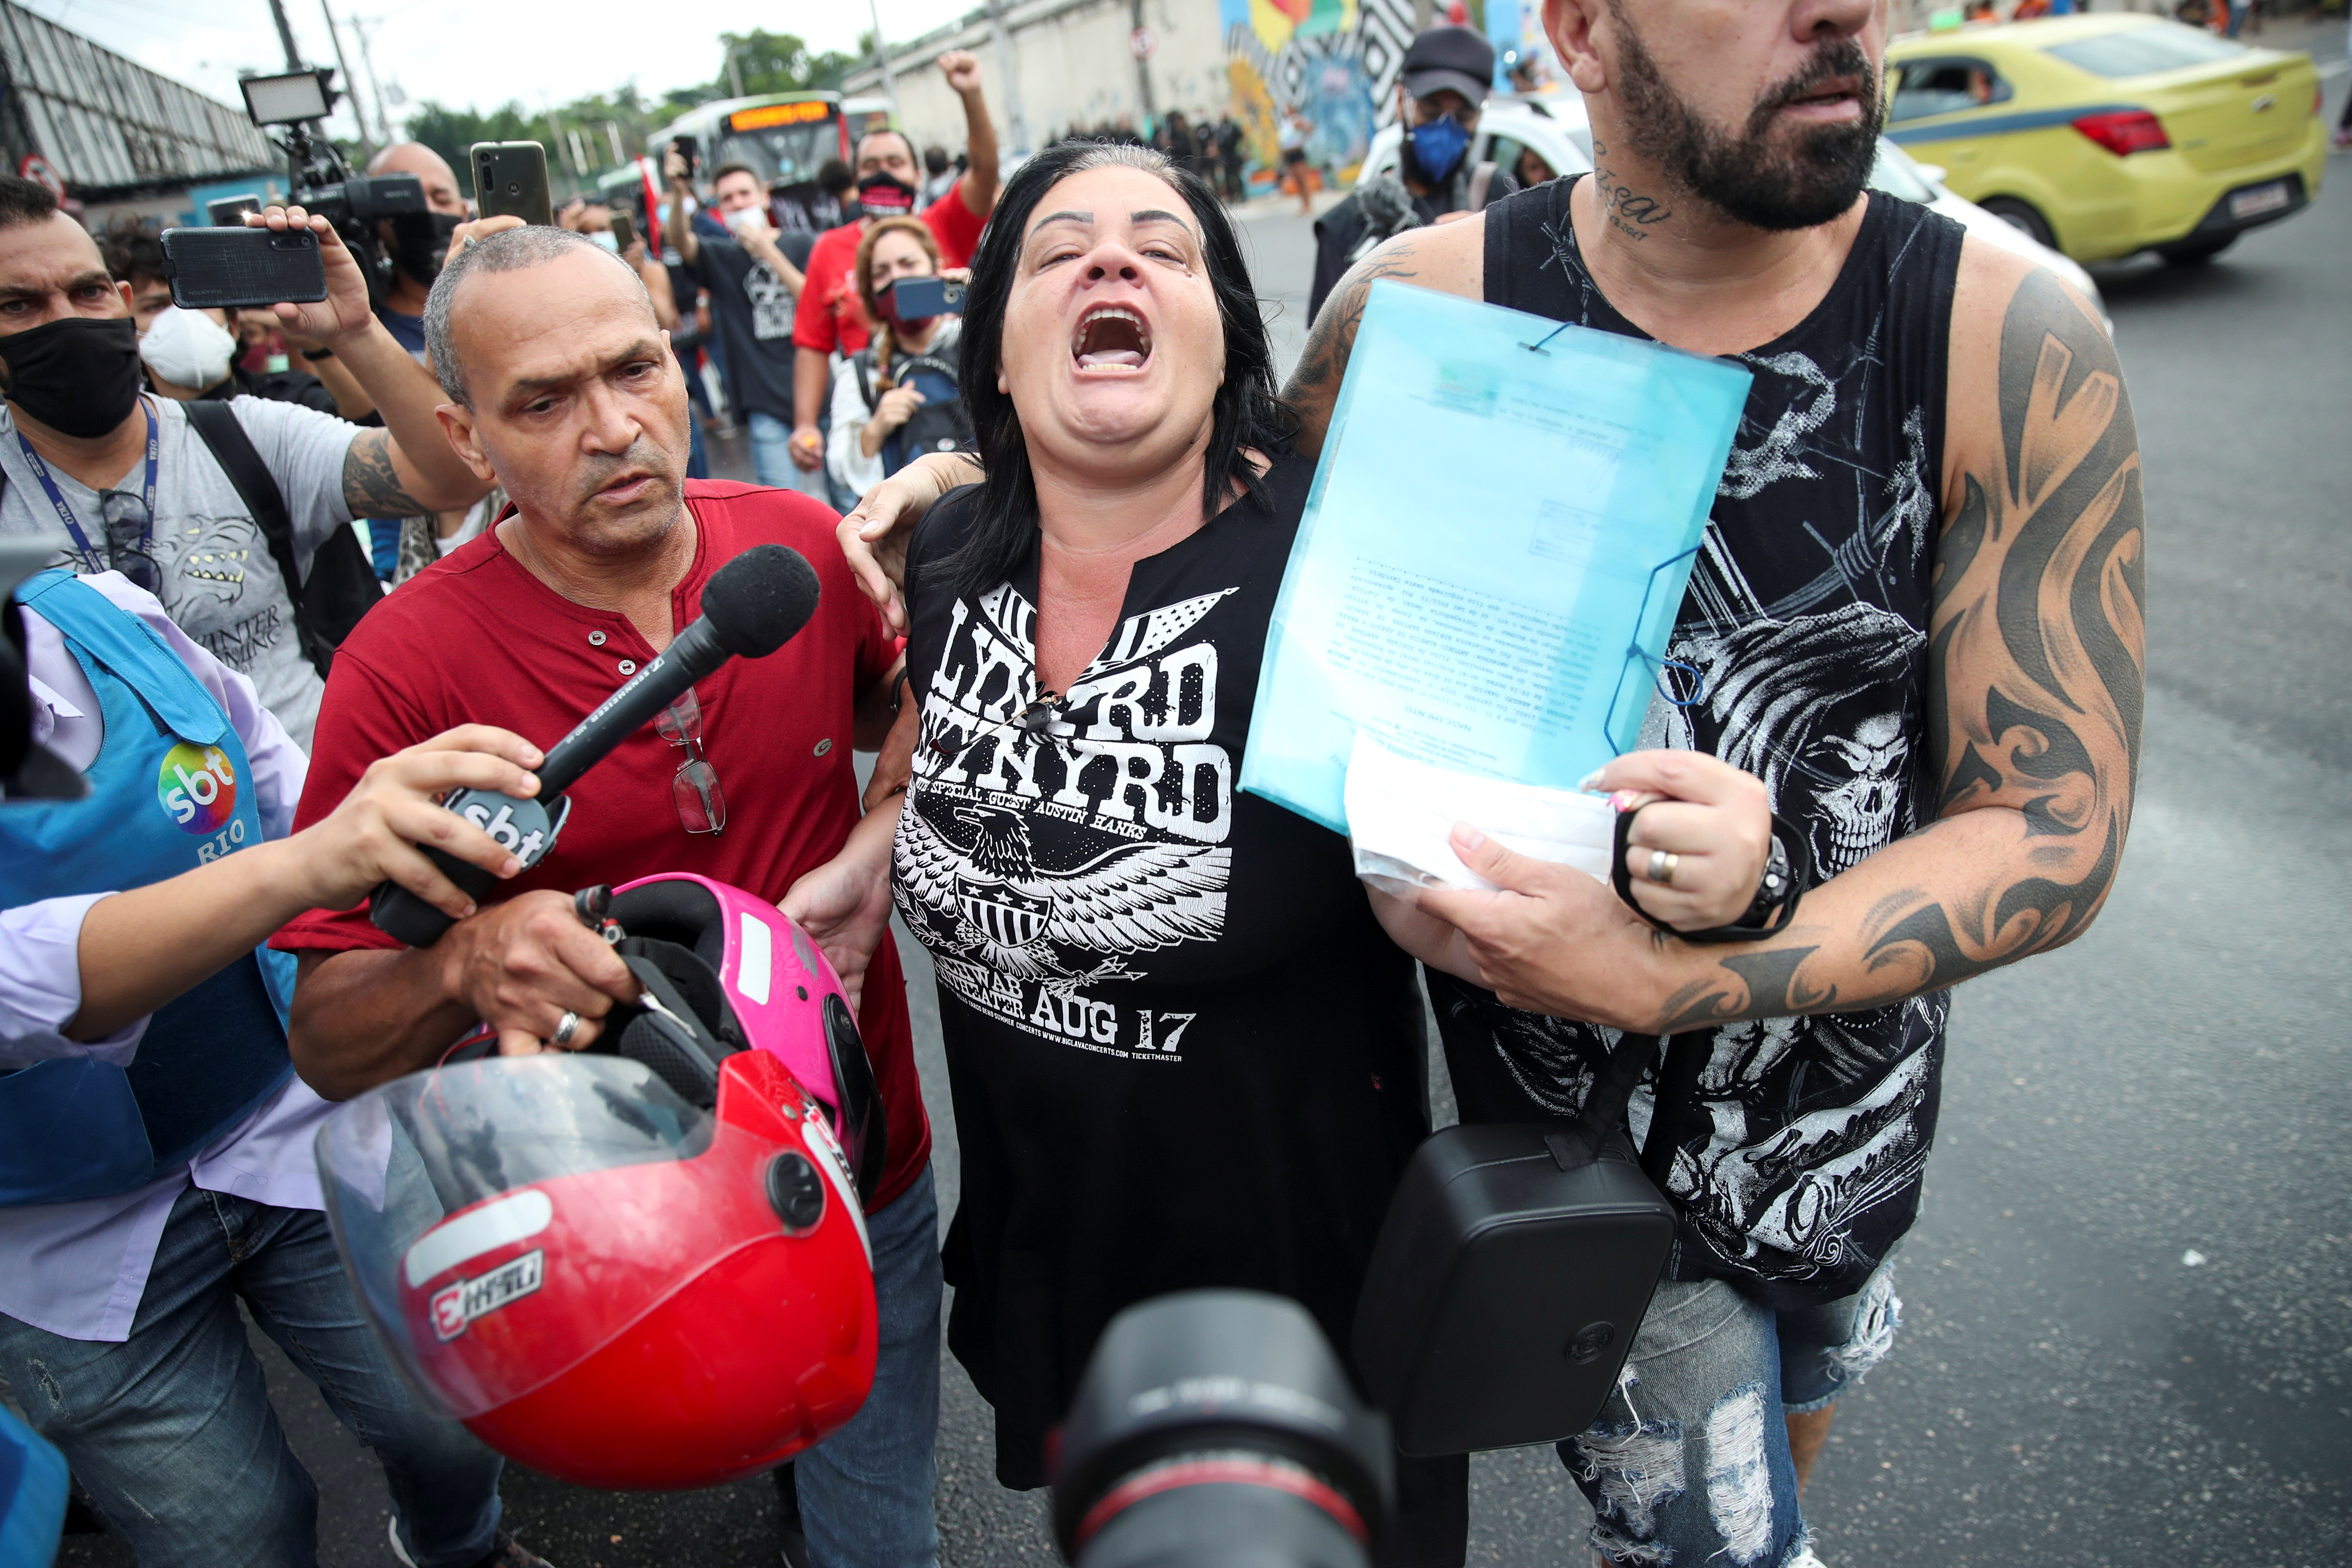 Adriana Santana de Araujo, 46, mother of Marlon Santana de Araujo, 23, one of the victims, reacts during a protest against police violence outside Jacarezinho slum, after a police operation which resulted in 25 deaths, in Rio de Janeiro, Brazil, May 7, 2021. REUTERS/Ricardo Moraes